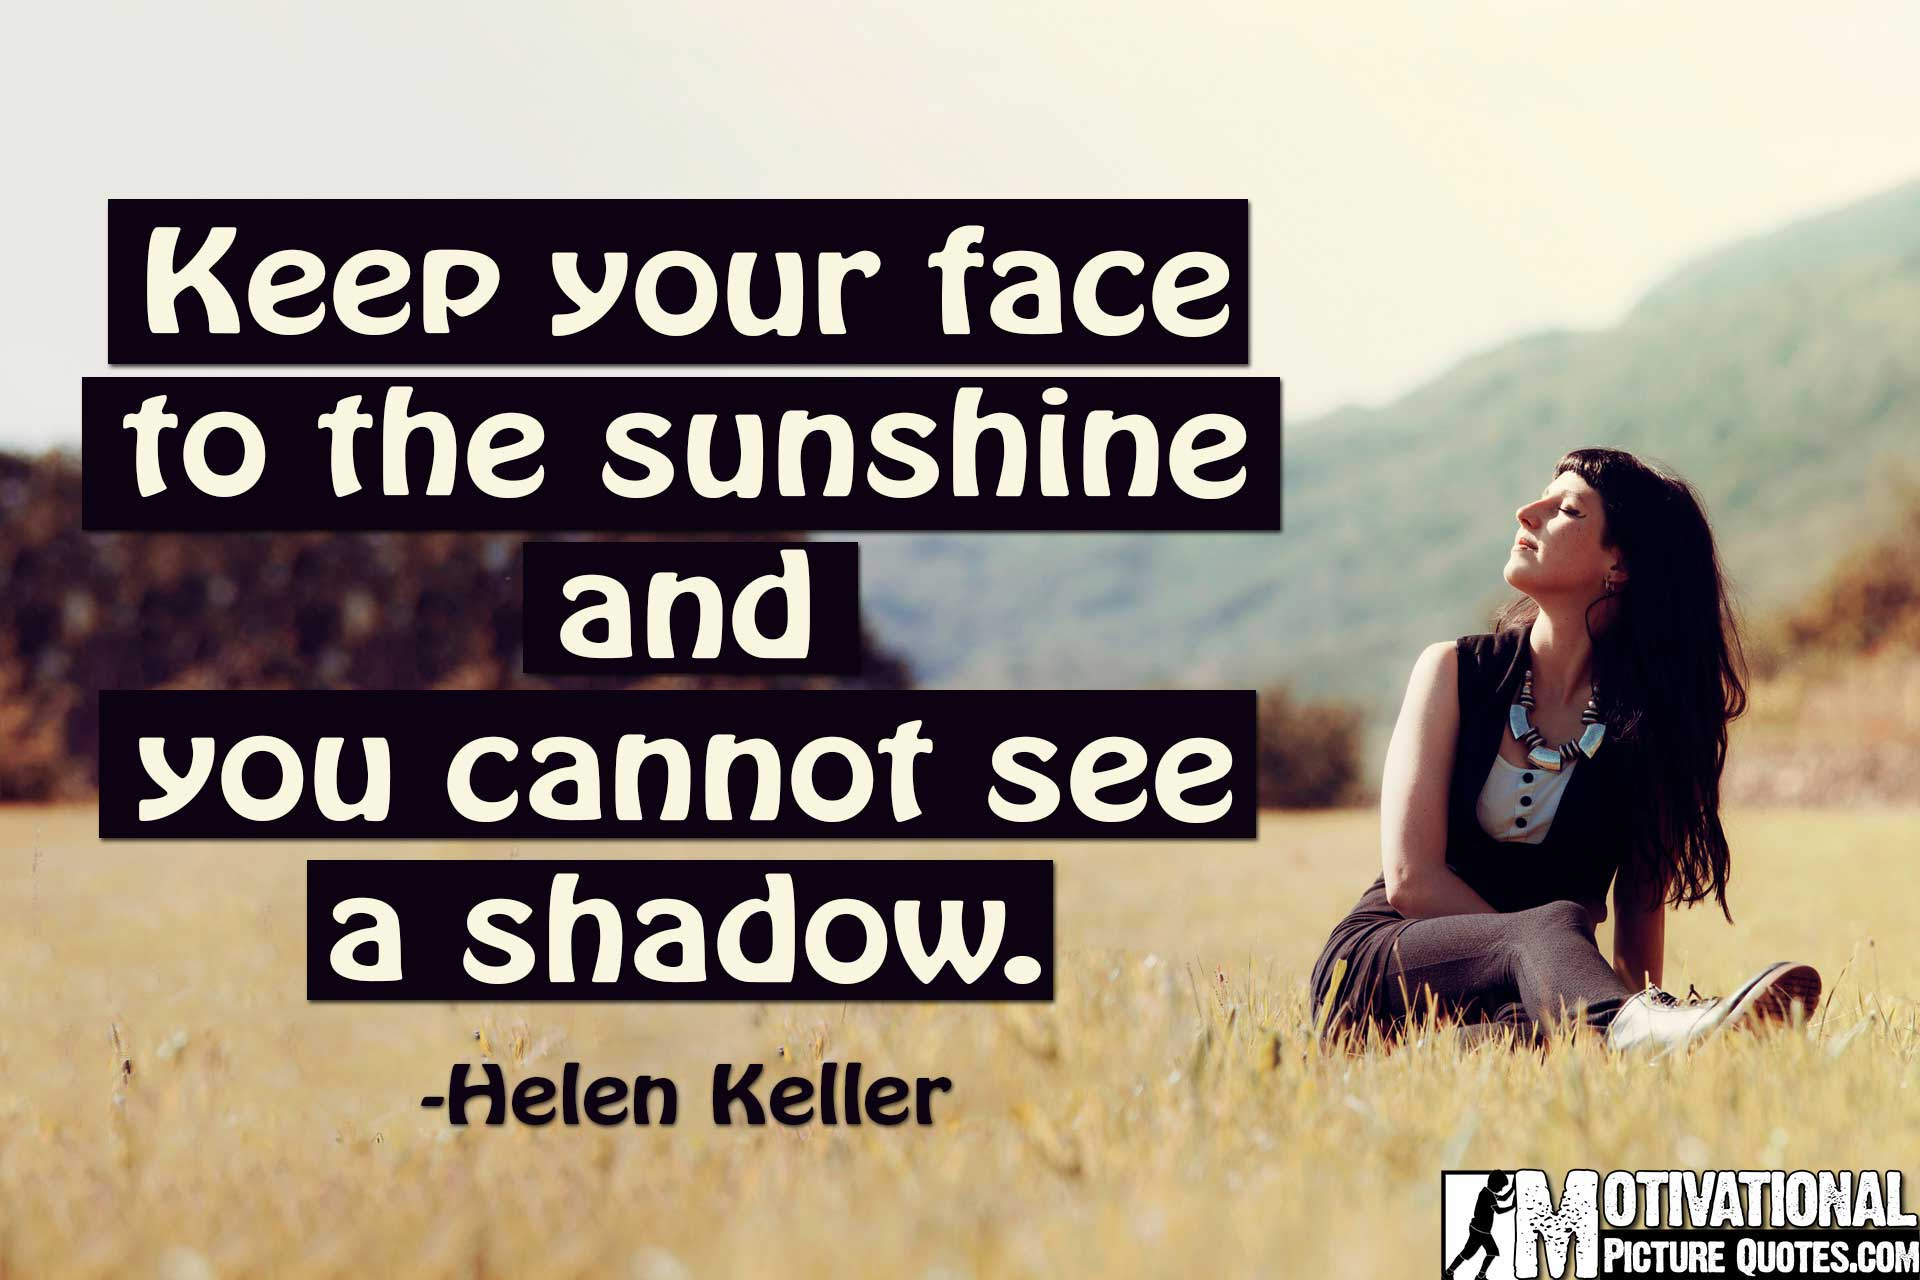 helen keller quotes about positive thinking